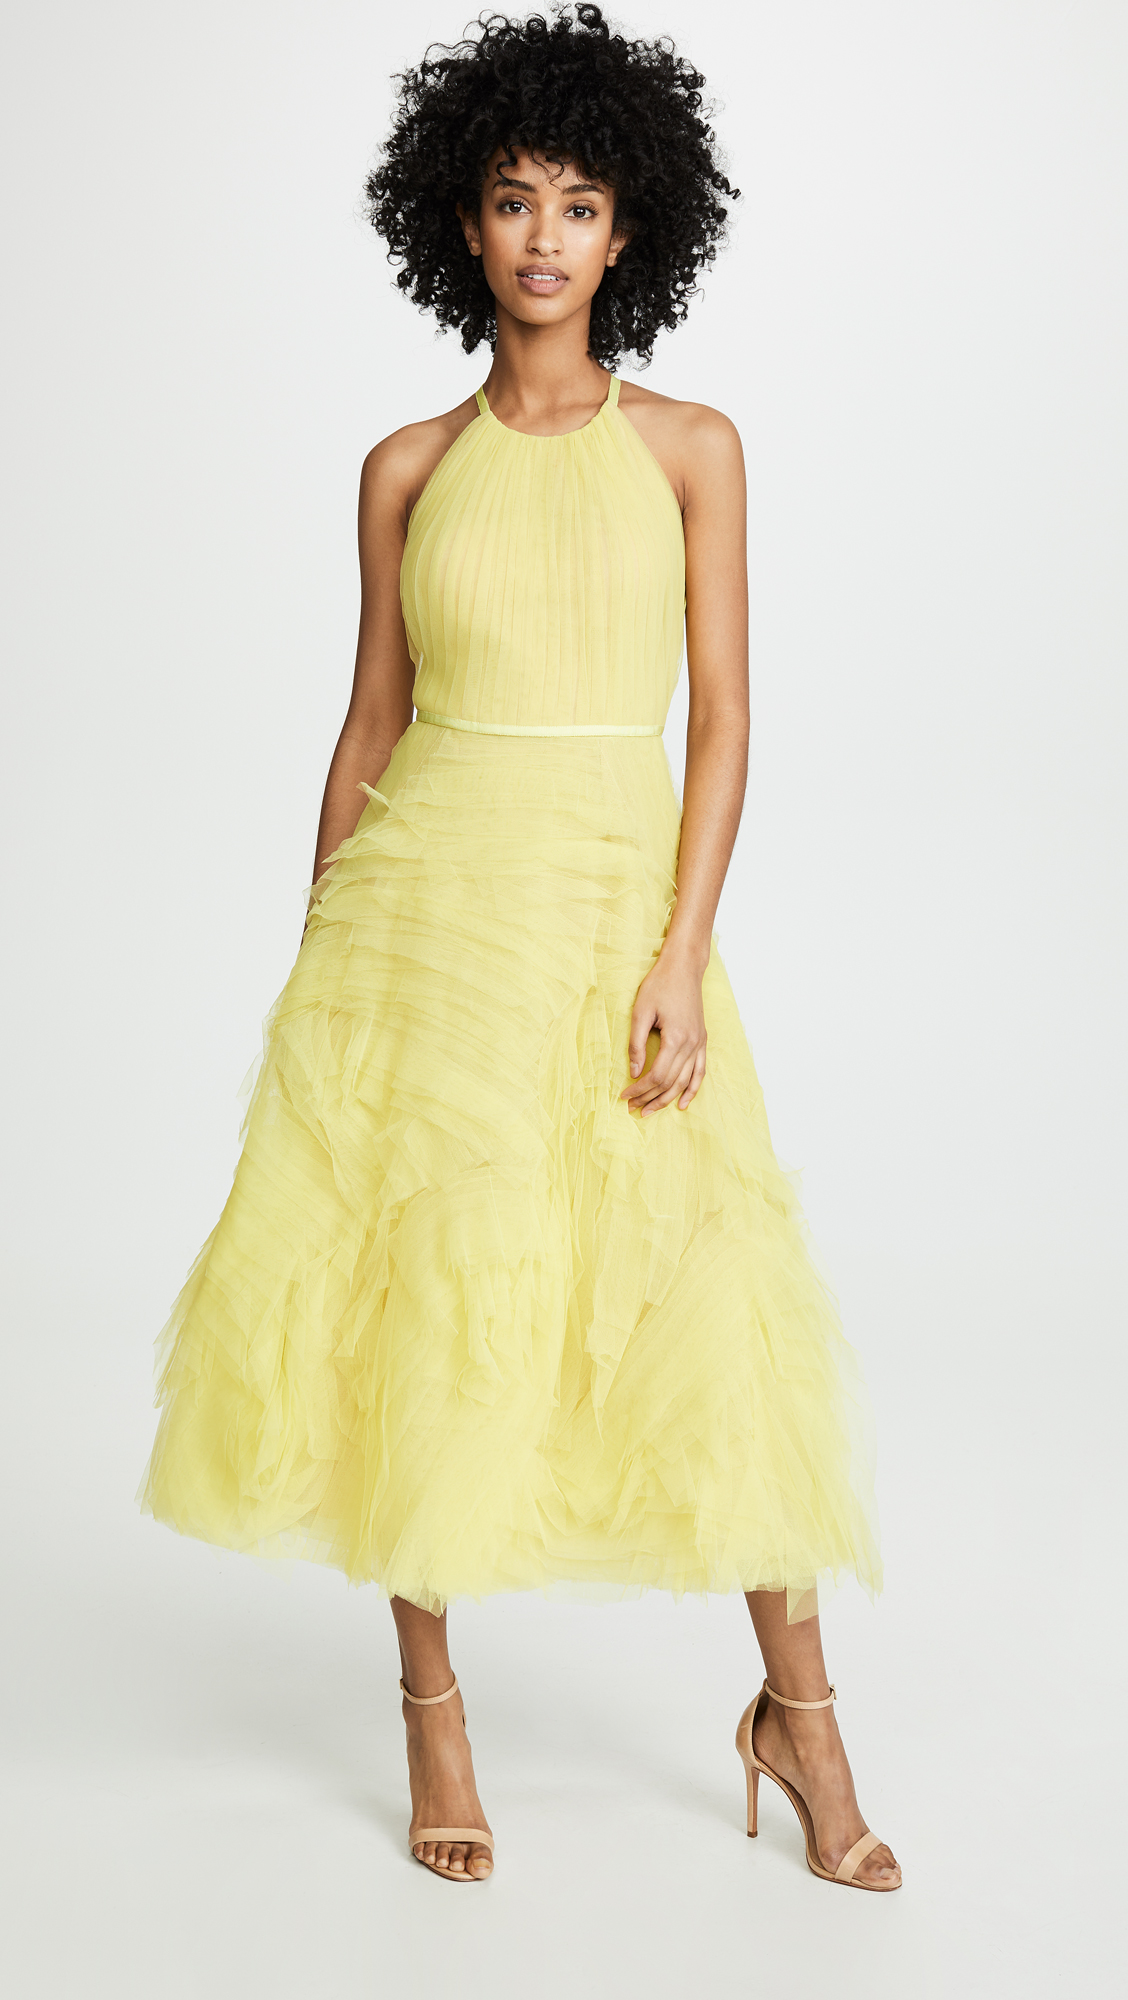 A Stunning Gown - Because why not?! This dress immediately makes me think of Belle in her gorgeous yellow gown. It's the perfect piece for any special occasions you may have this summer, and it will truly make you feel like the Belle of the ball!